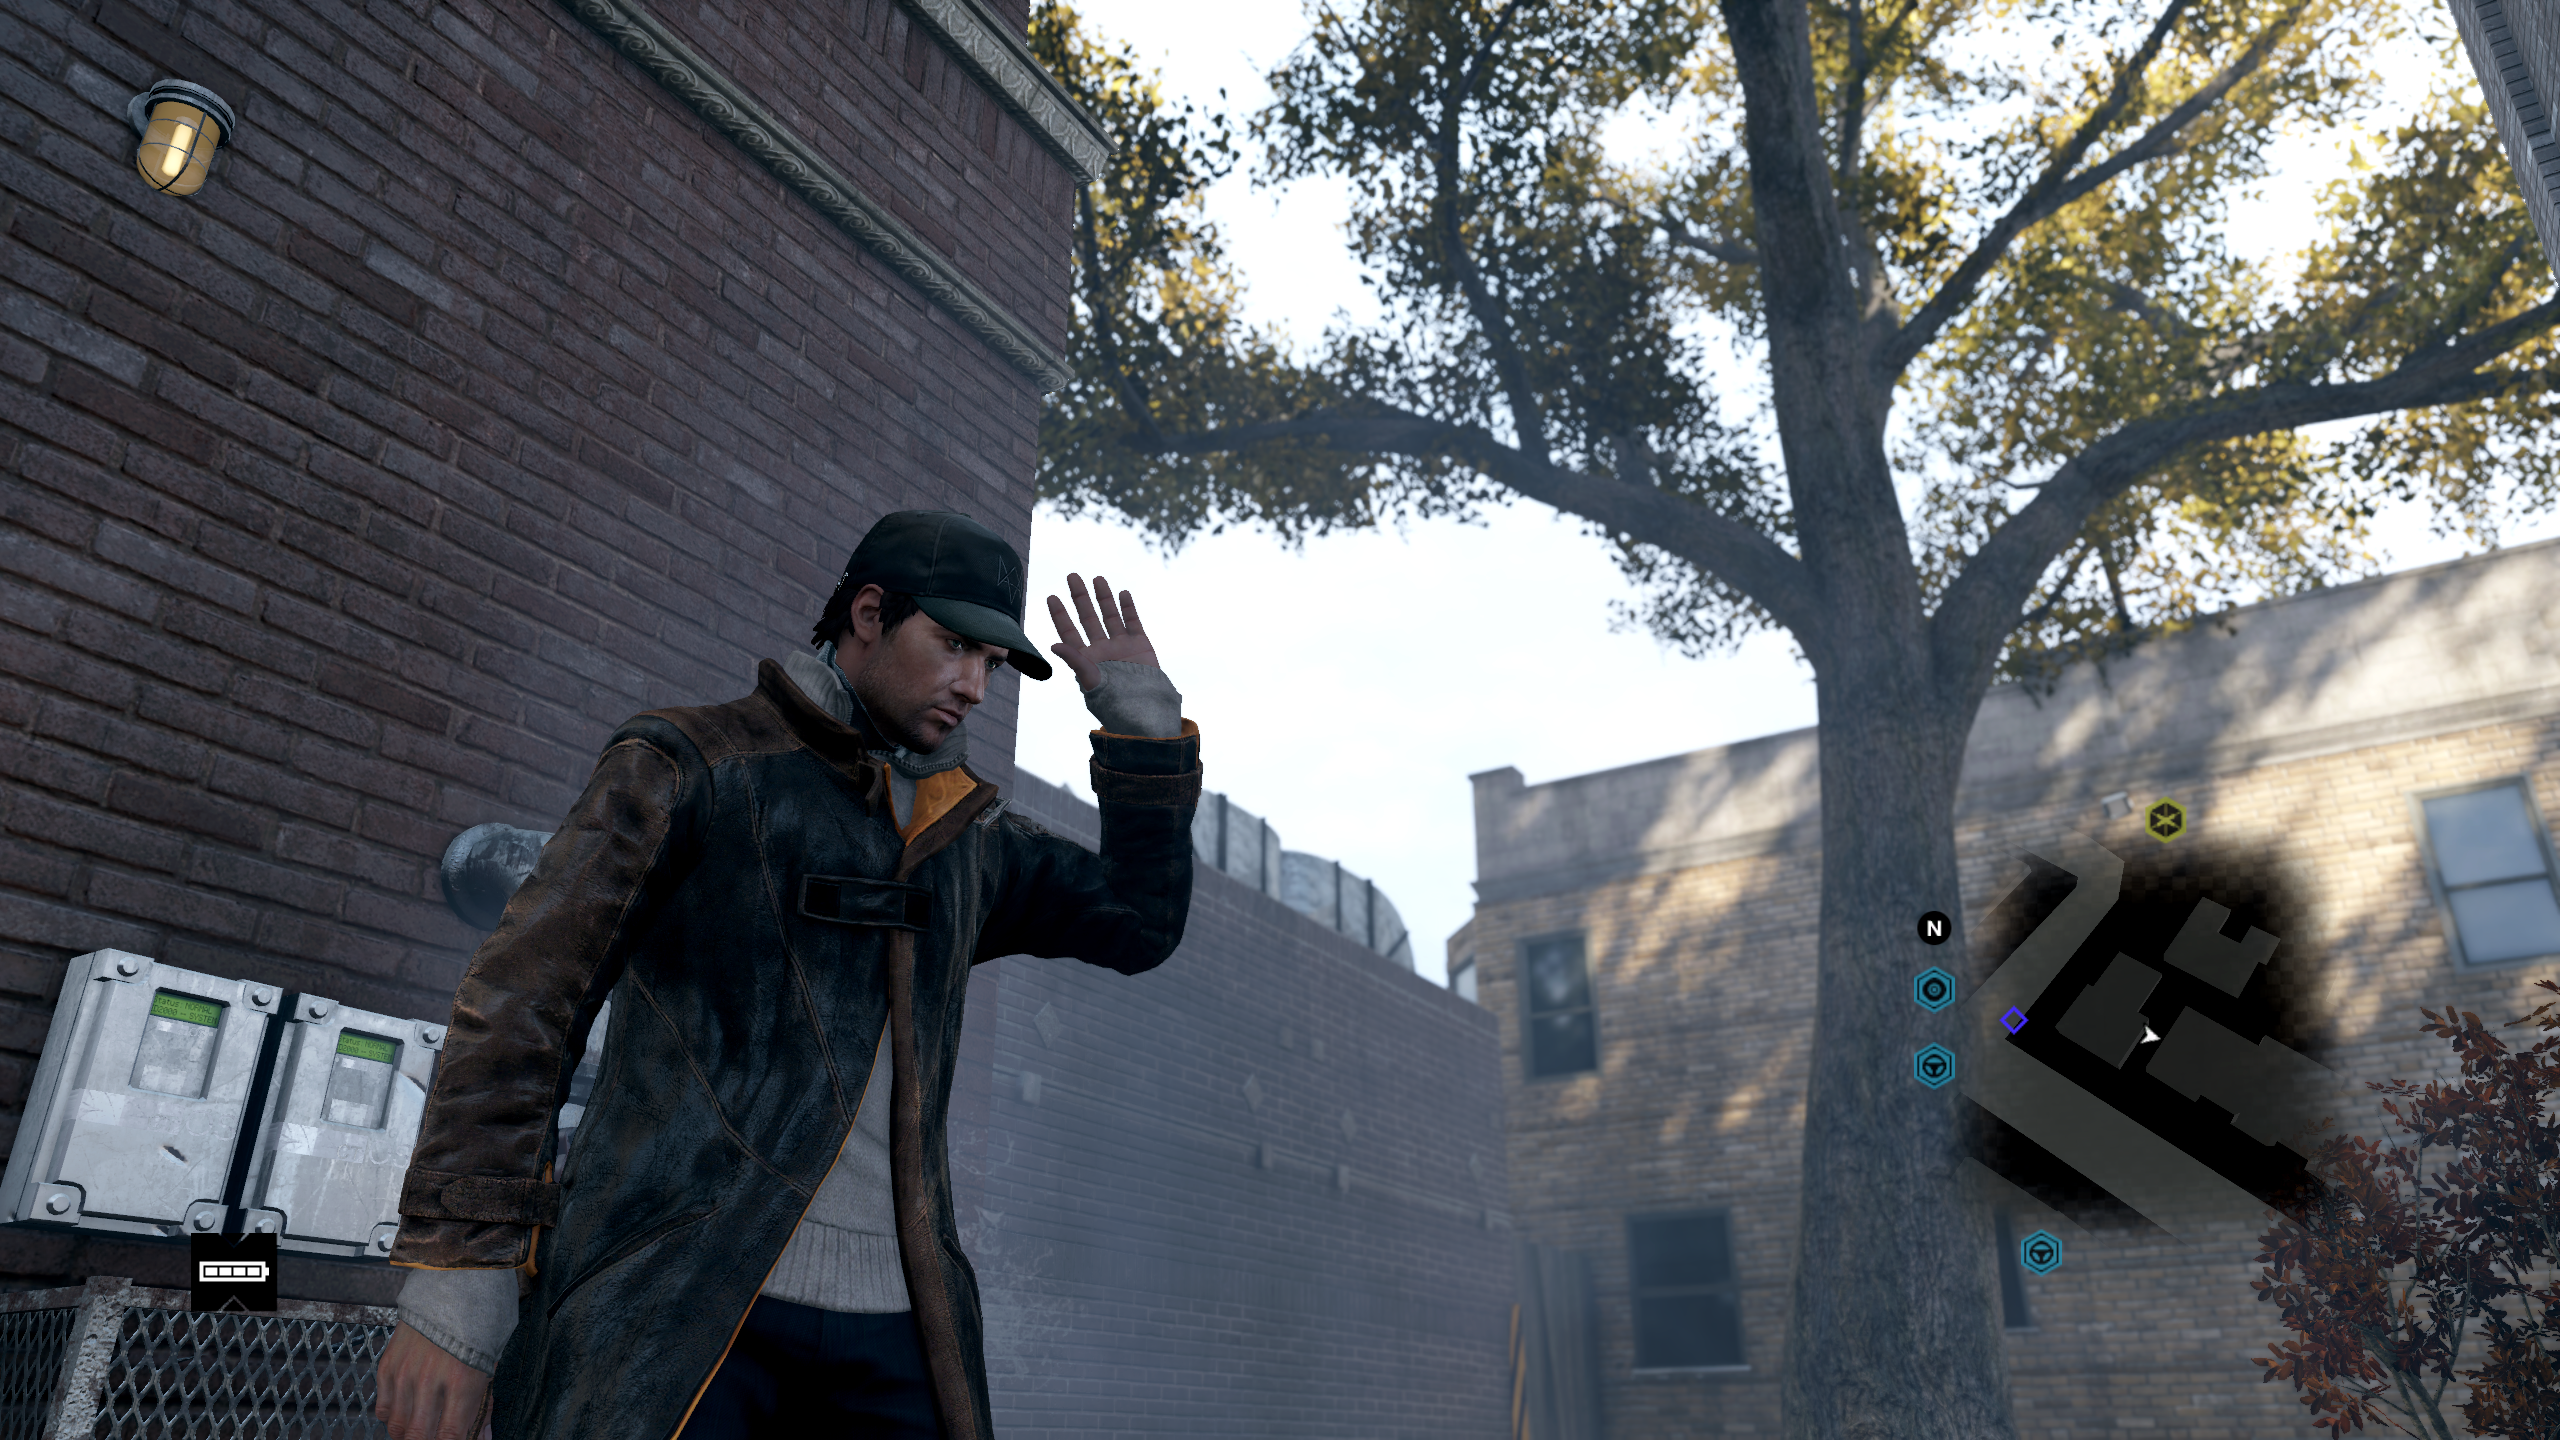 Watch_Dogs_2014_06_23_16_45_38_977.png